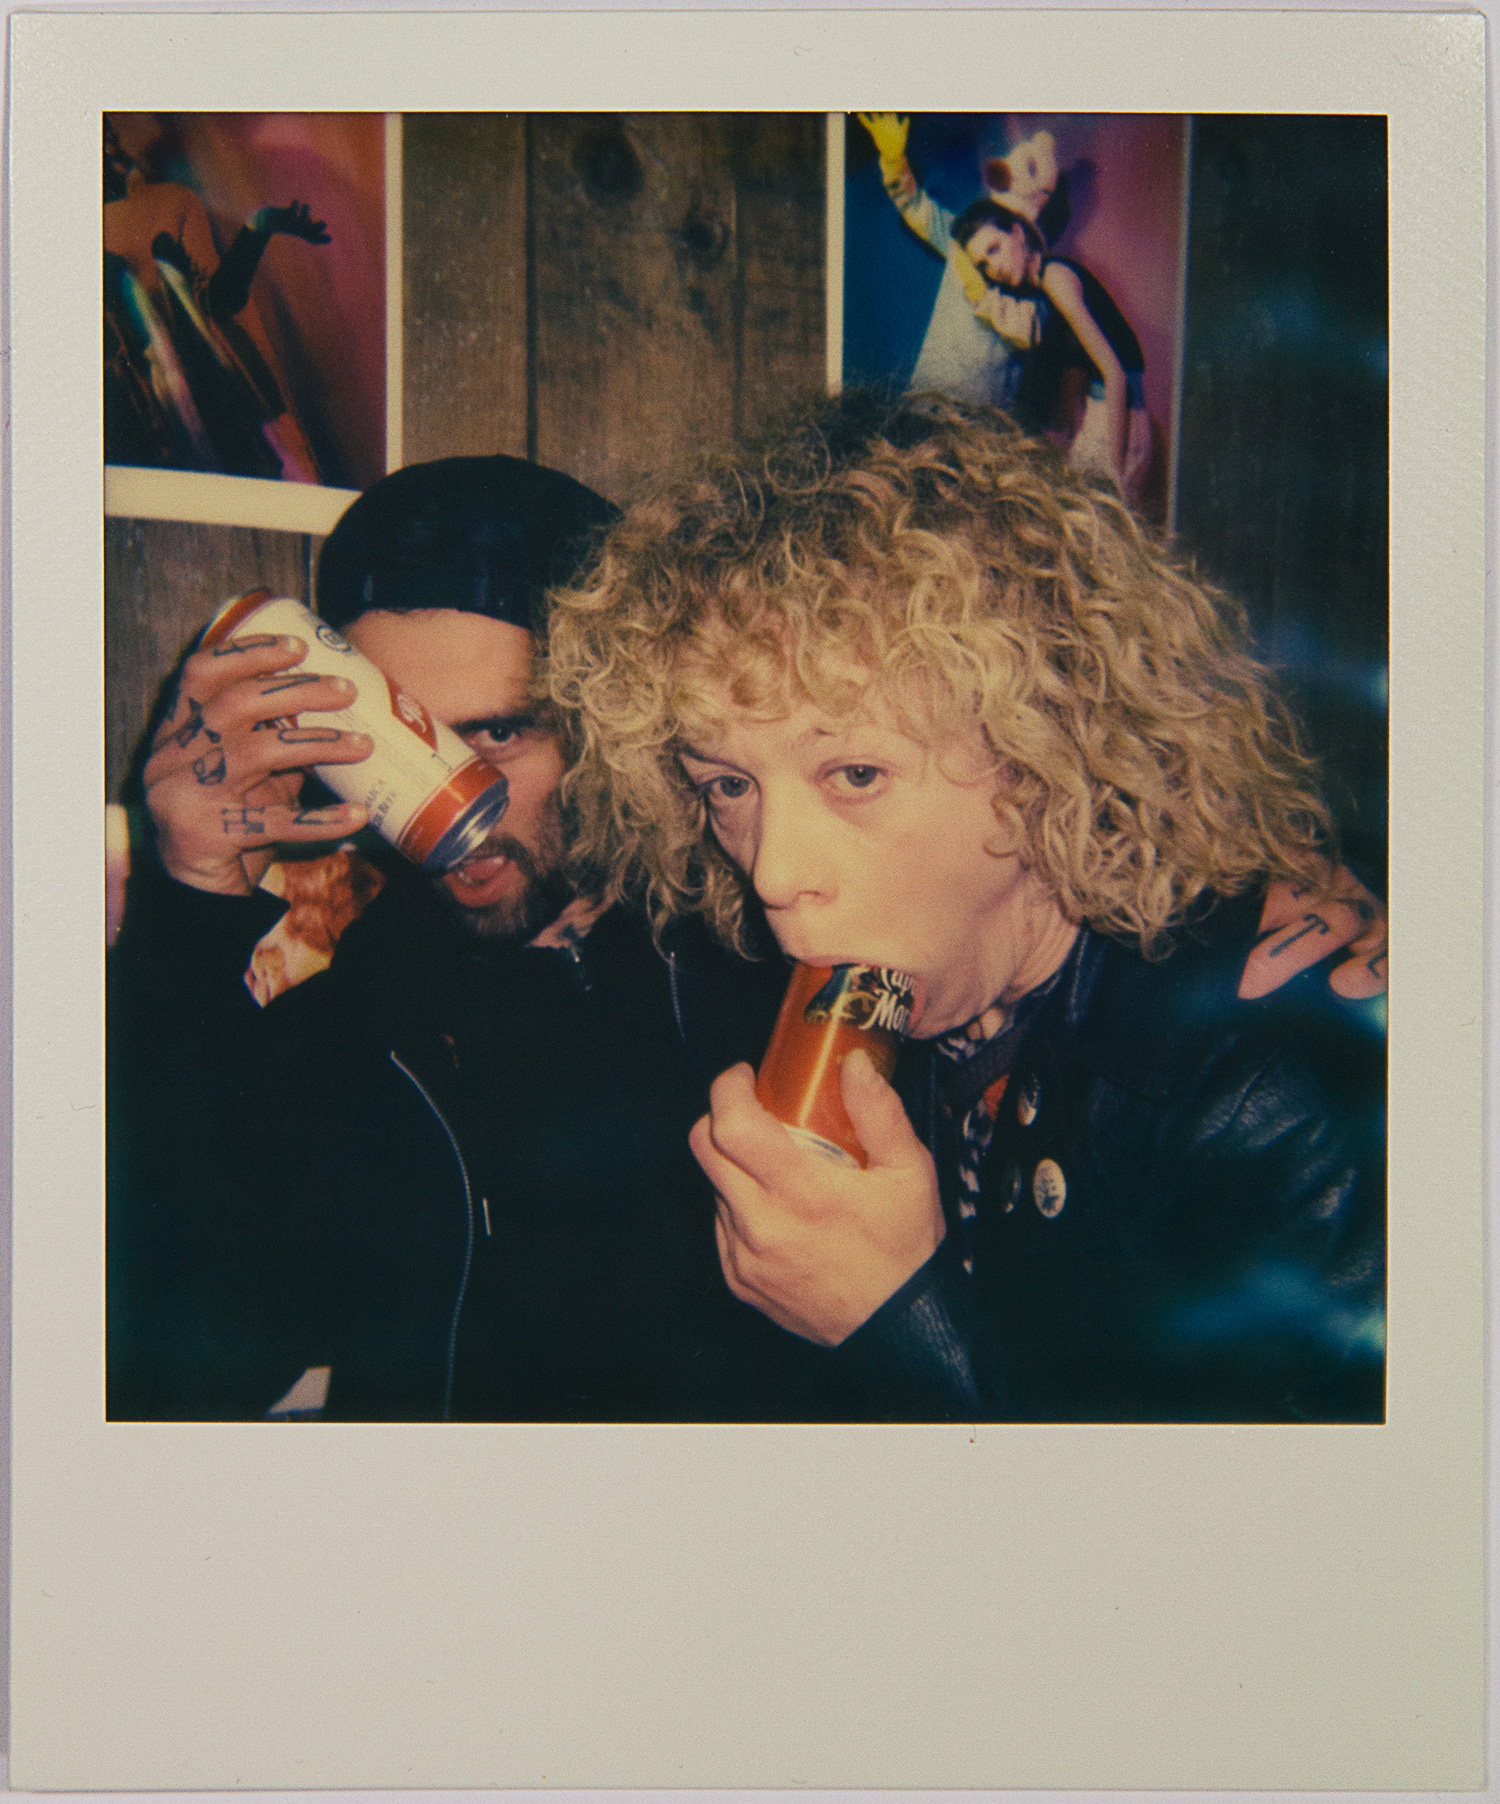 PYLOT ISSUE 04 LAUNCH PARTY IMPOSSIBLE PROJECT 17